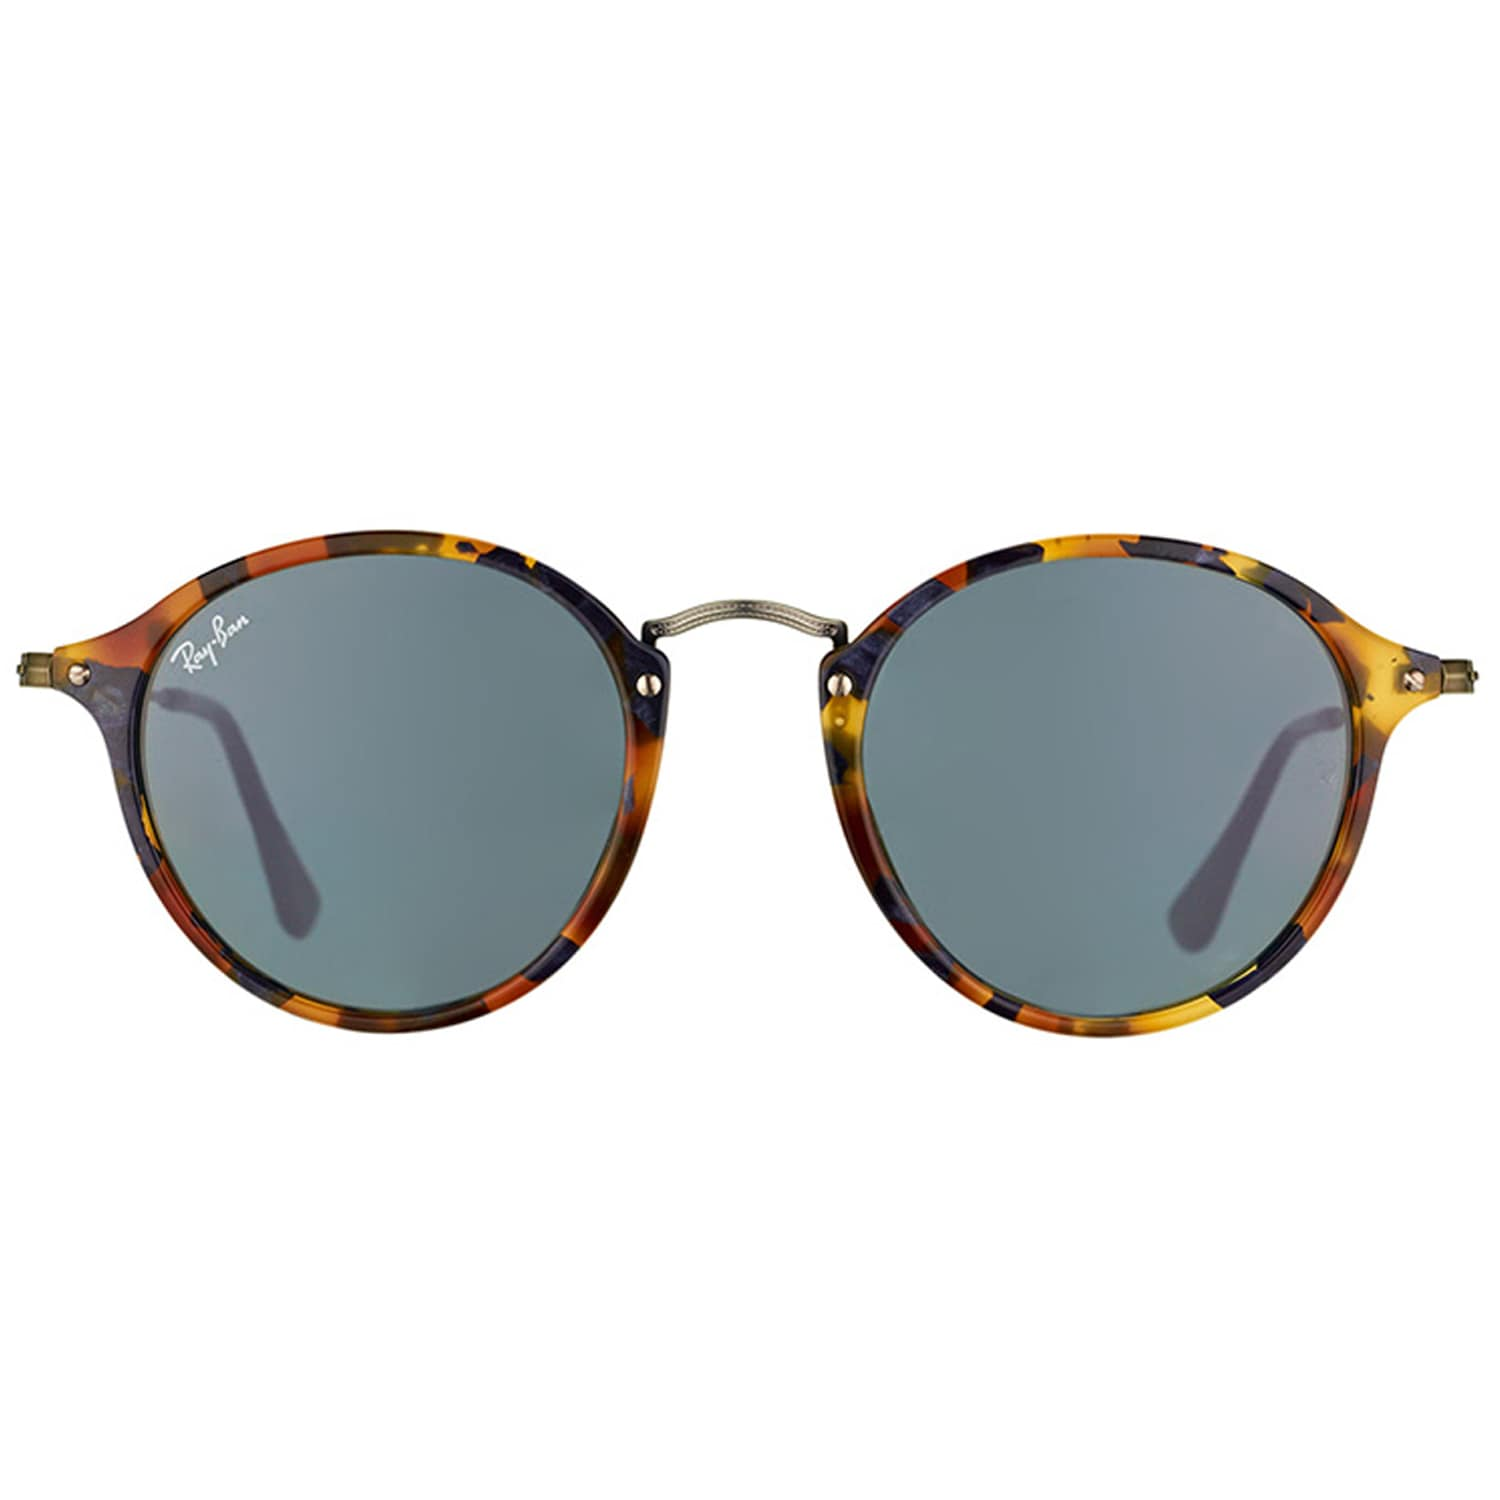 d40b987ee2 ... buy shop ray ban round rb 2447 1158r5 unisex spotted blue havana frame  blue lens 52